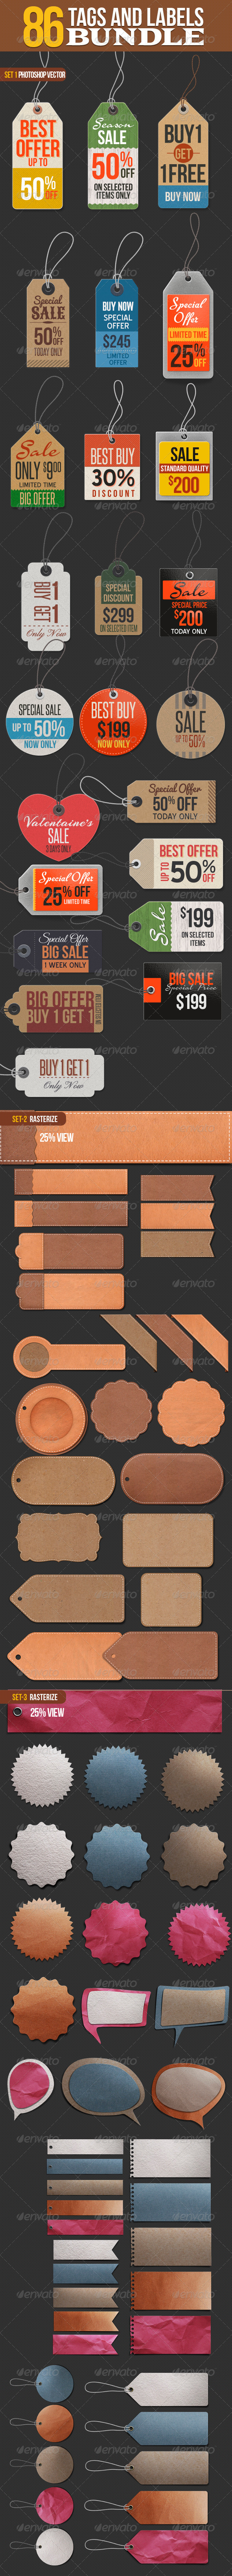 GraphicRiver 86 Tags and Labels Bundle 6644063